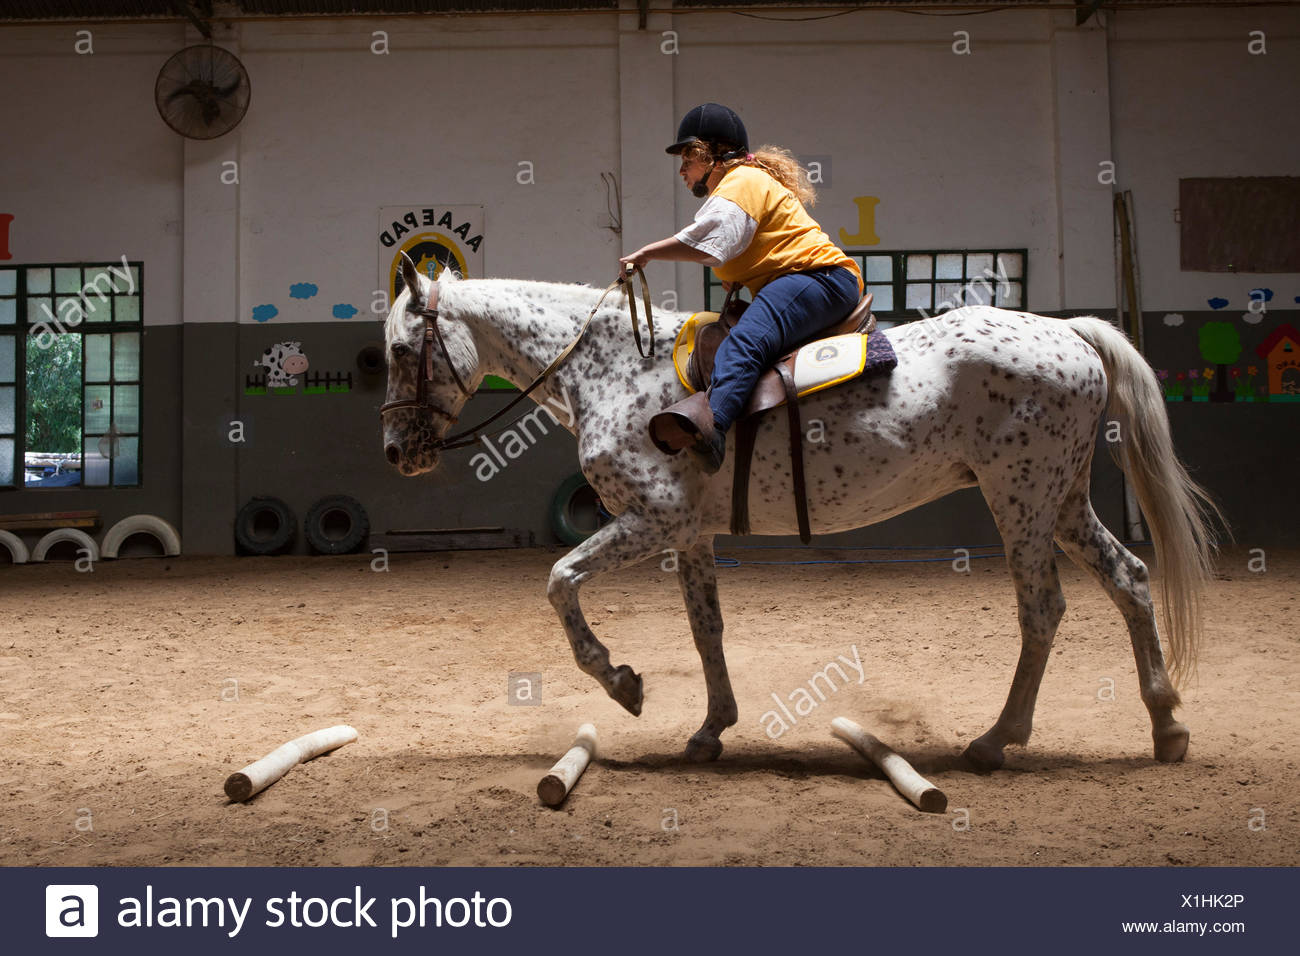 Paraplegic Woman On Horse In A Horse Therapy Center Roxane 38 Disabled And Wheelchair Since Birth Like Riding For 14 Years It Goes To The Center She Trot And Balance Exercises That